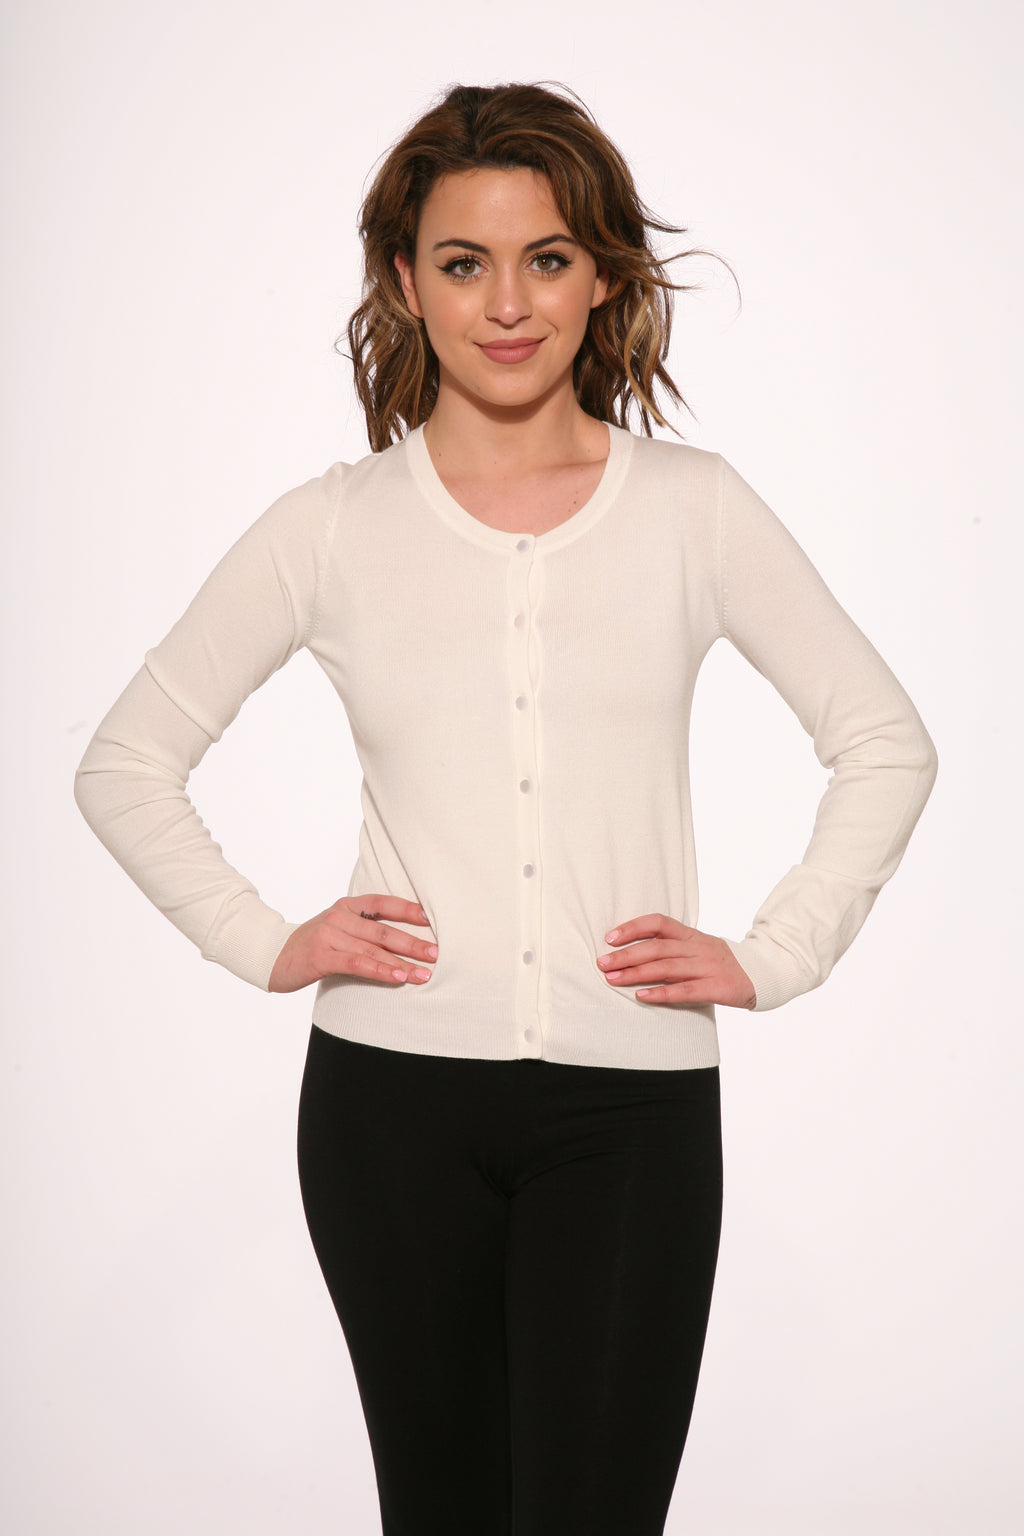 0202 White Crew-neck Cardigan